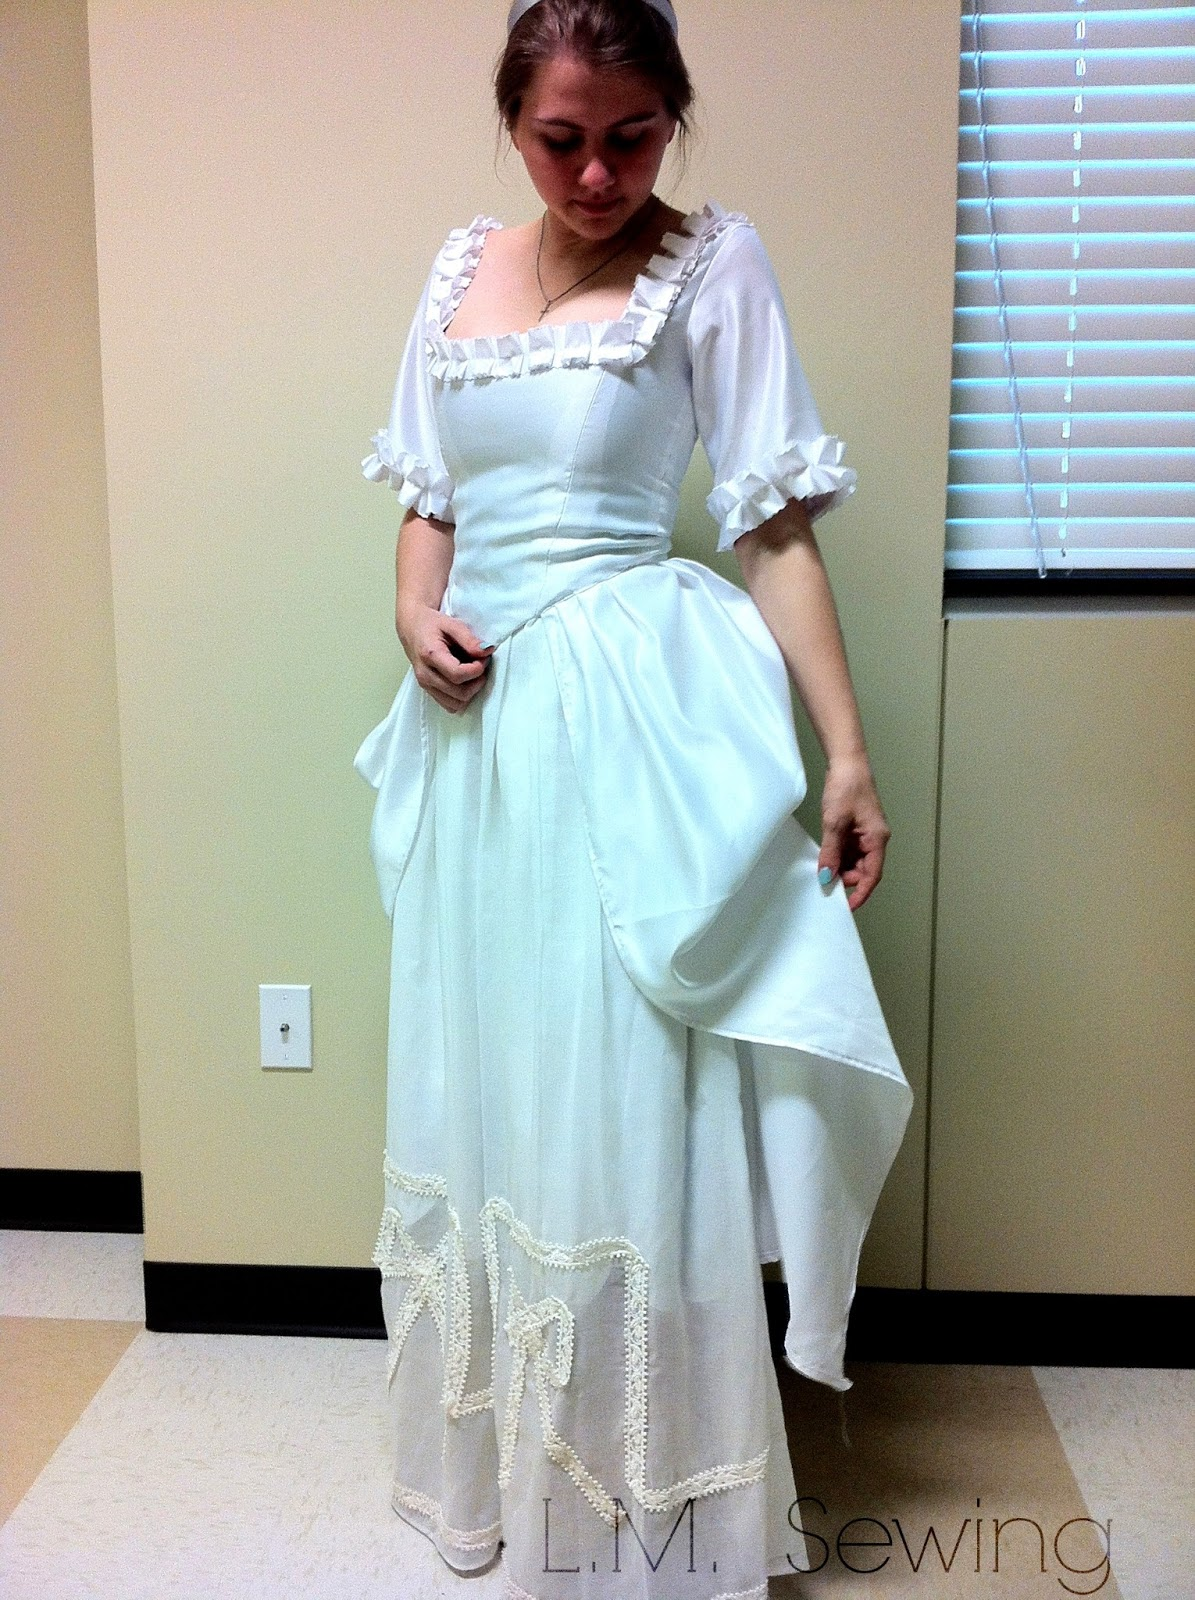 L.M. Sewing: HSF Challenge 15: White